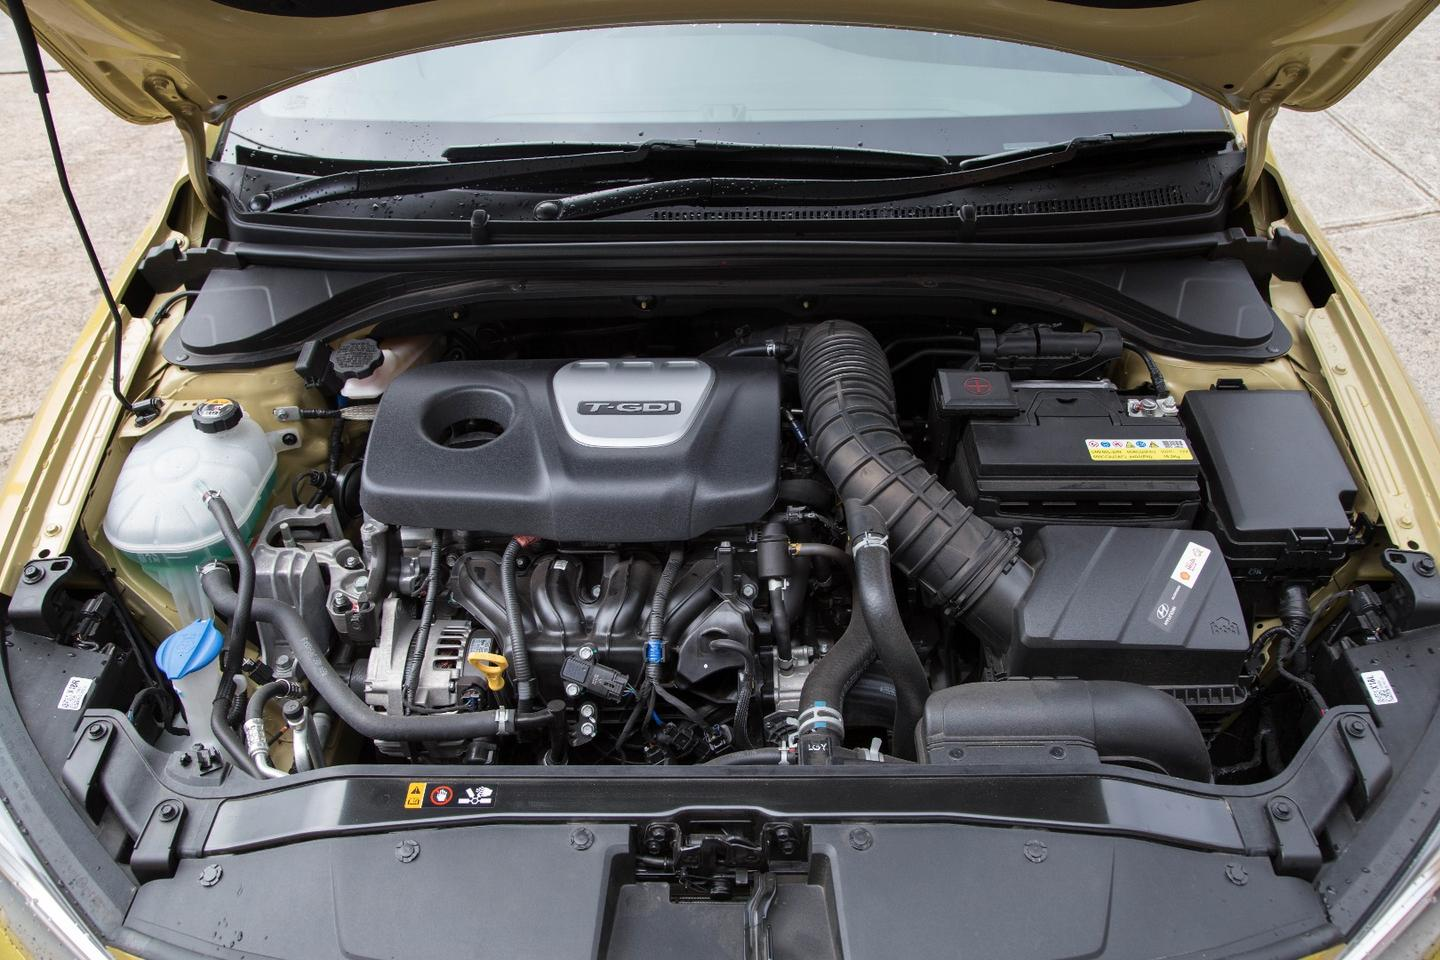 The engine in the Elantra SRTurbo makes 150 kW